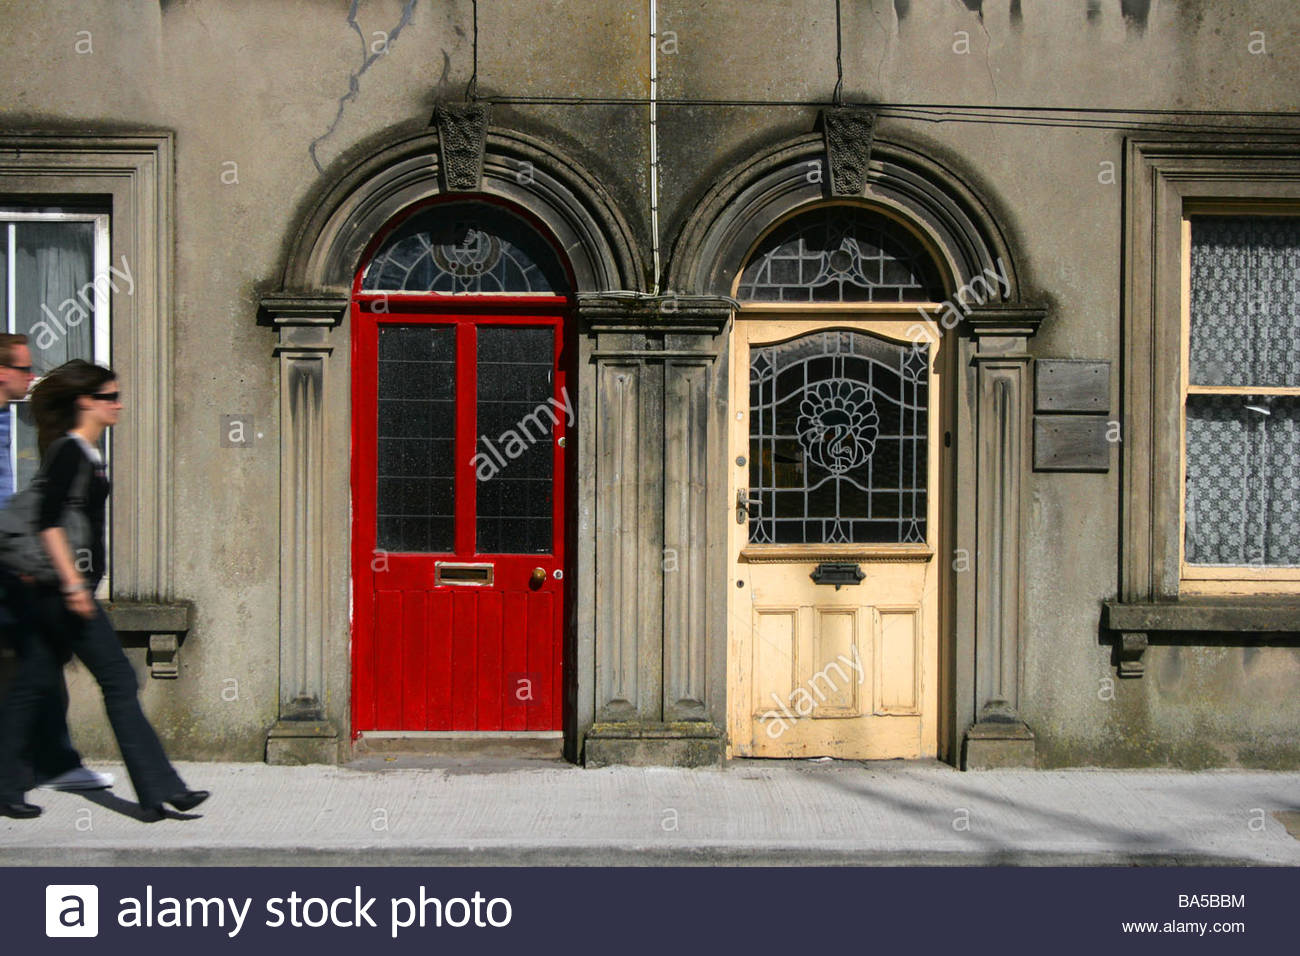 Irish doors and building in Youghal town county Cork Ireland & Irish doors and building in Youghal town county Cork Ireland Stock ...